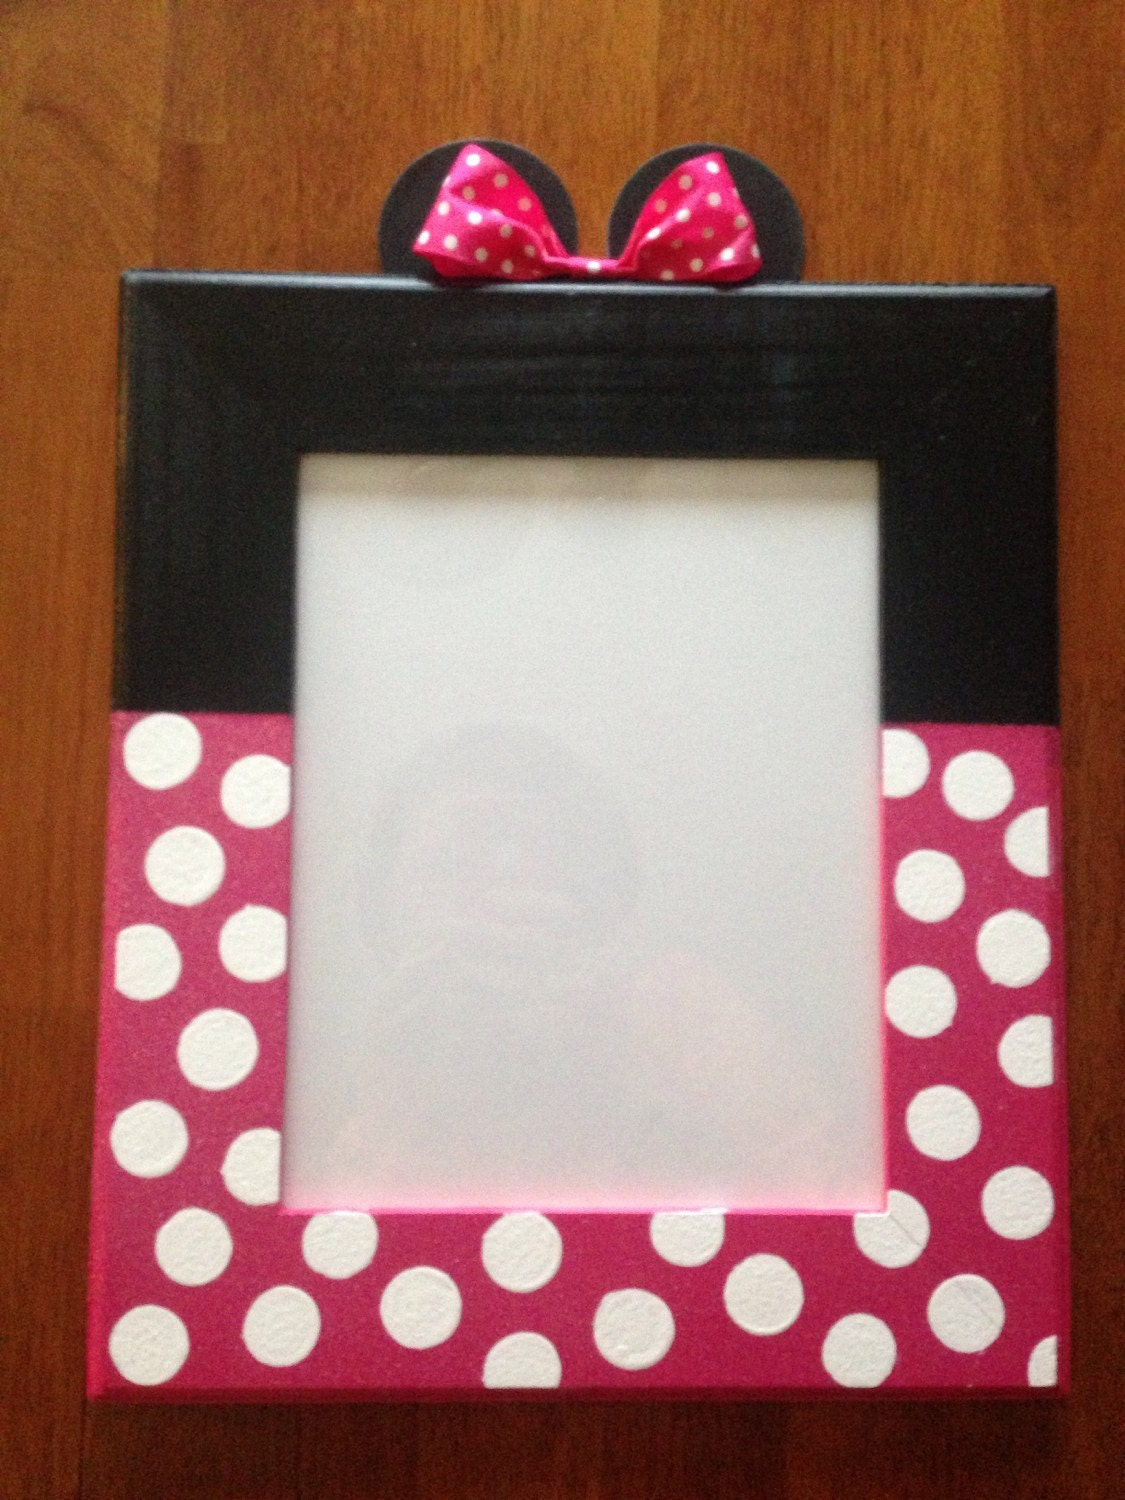 Minnie Mouse Picture Frame By Astacrafts On Etsy. Easy Autocad Manager Cover Letter. Free Minimalist Website Template. New Years Eve Flyer Template. Graduate School Washington Dc. Pro Forma Template Excel. Employee Productivity Tracking Template. Places To Have A Graduation Party Near Me. Doc Mcstuffins Invitations